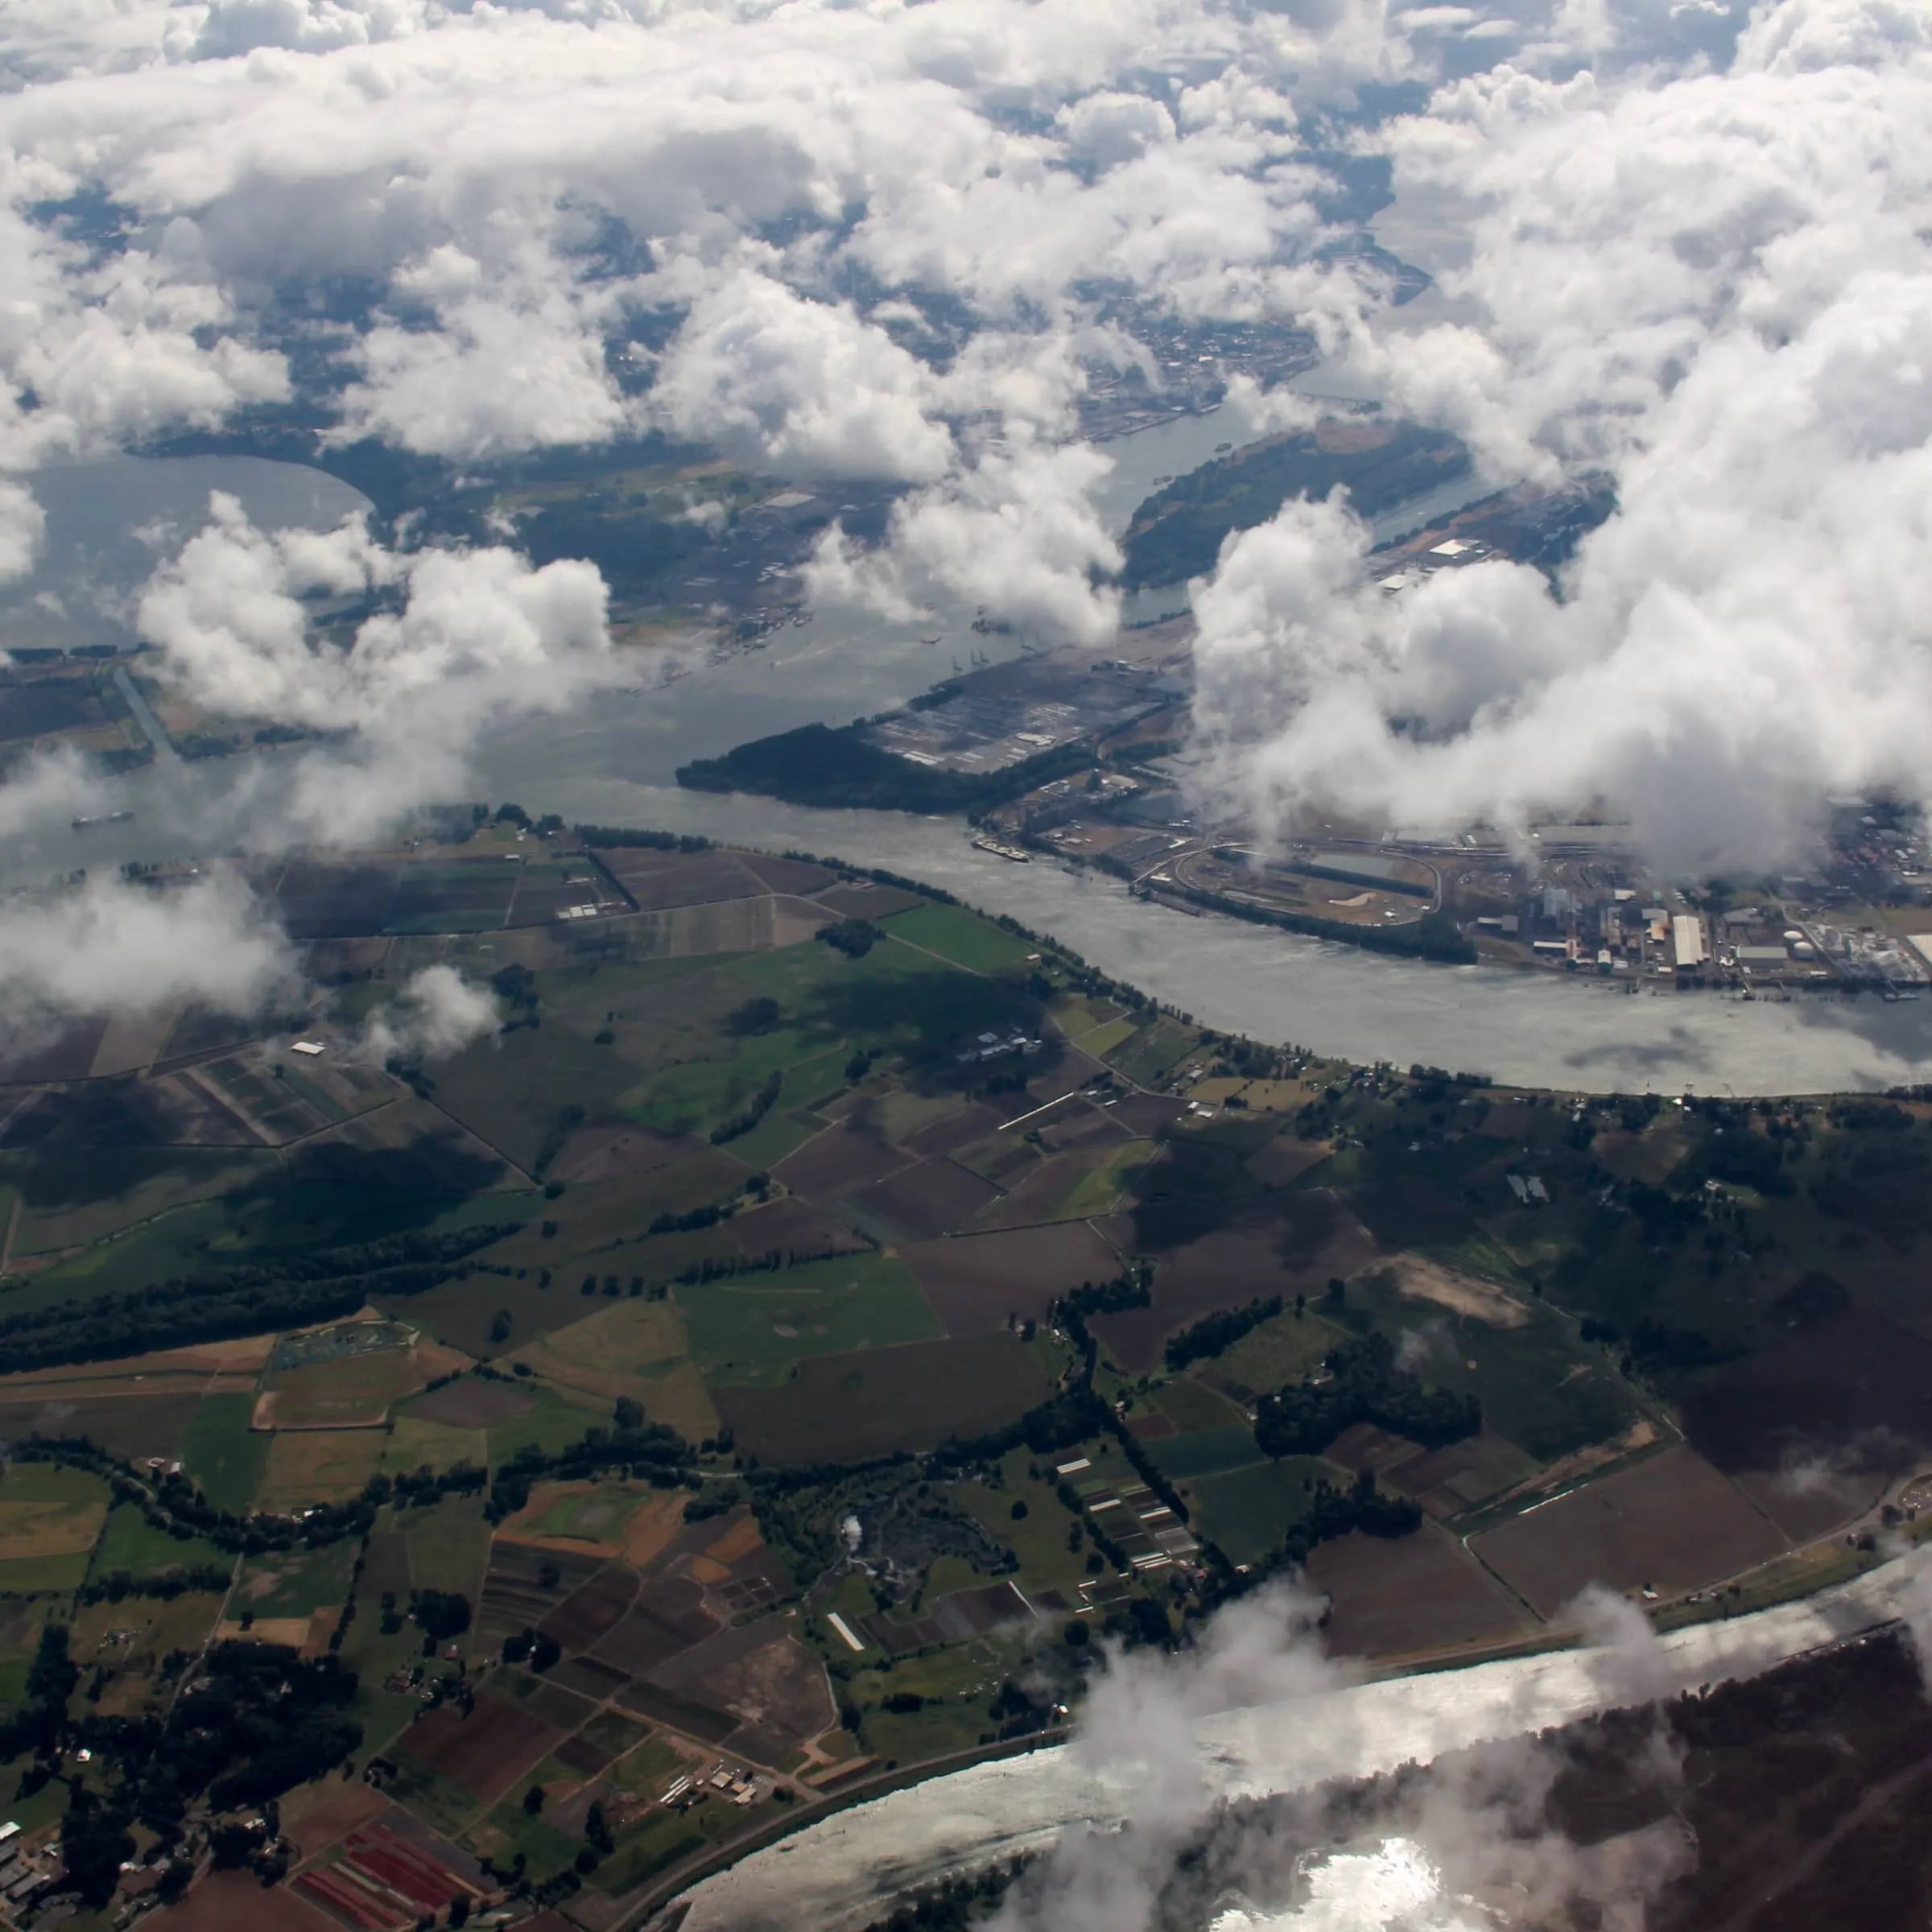 Vancouver Lake, Columbia River, Willamette River, and Multnomah Channel